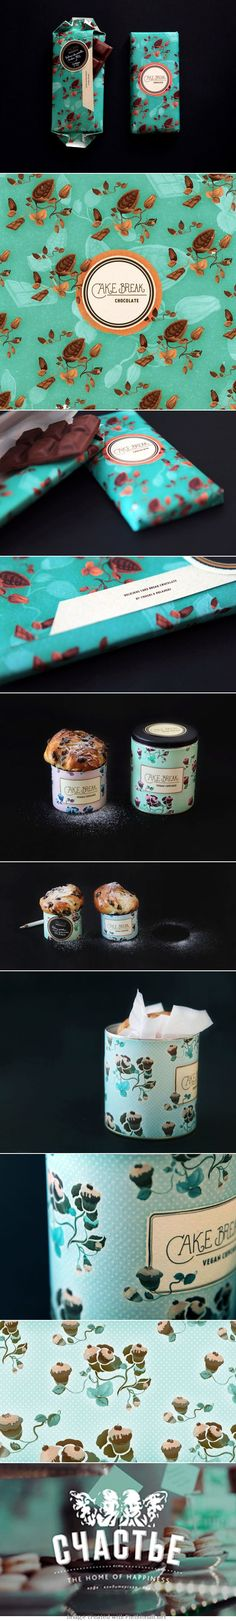 Let's take cake and coffee break packaging curated by Packaging Diva PD